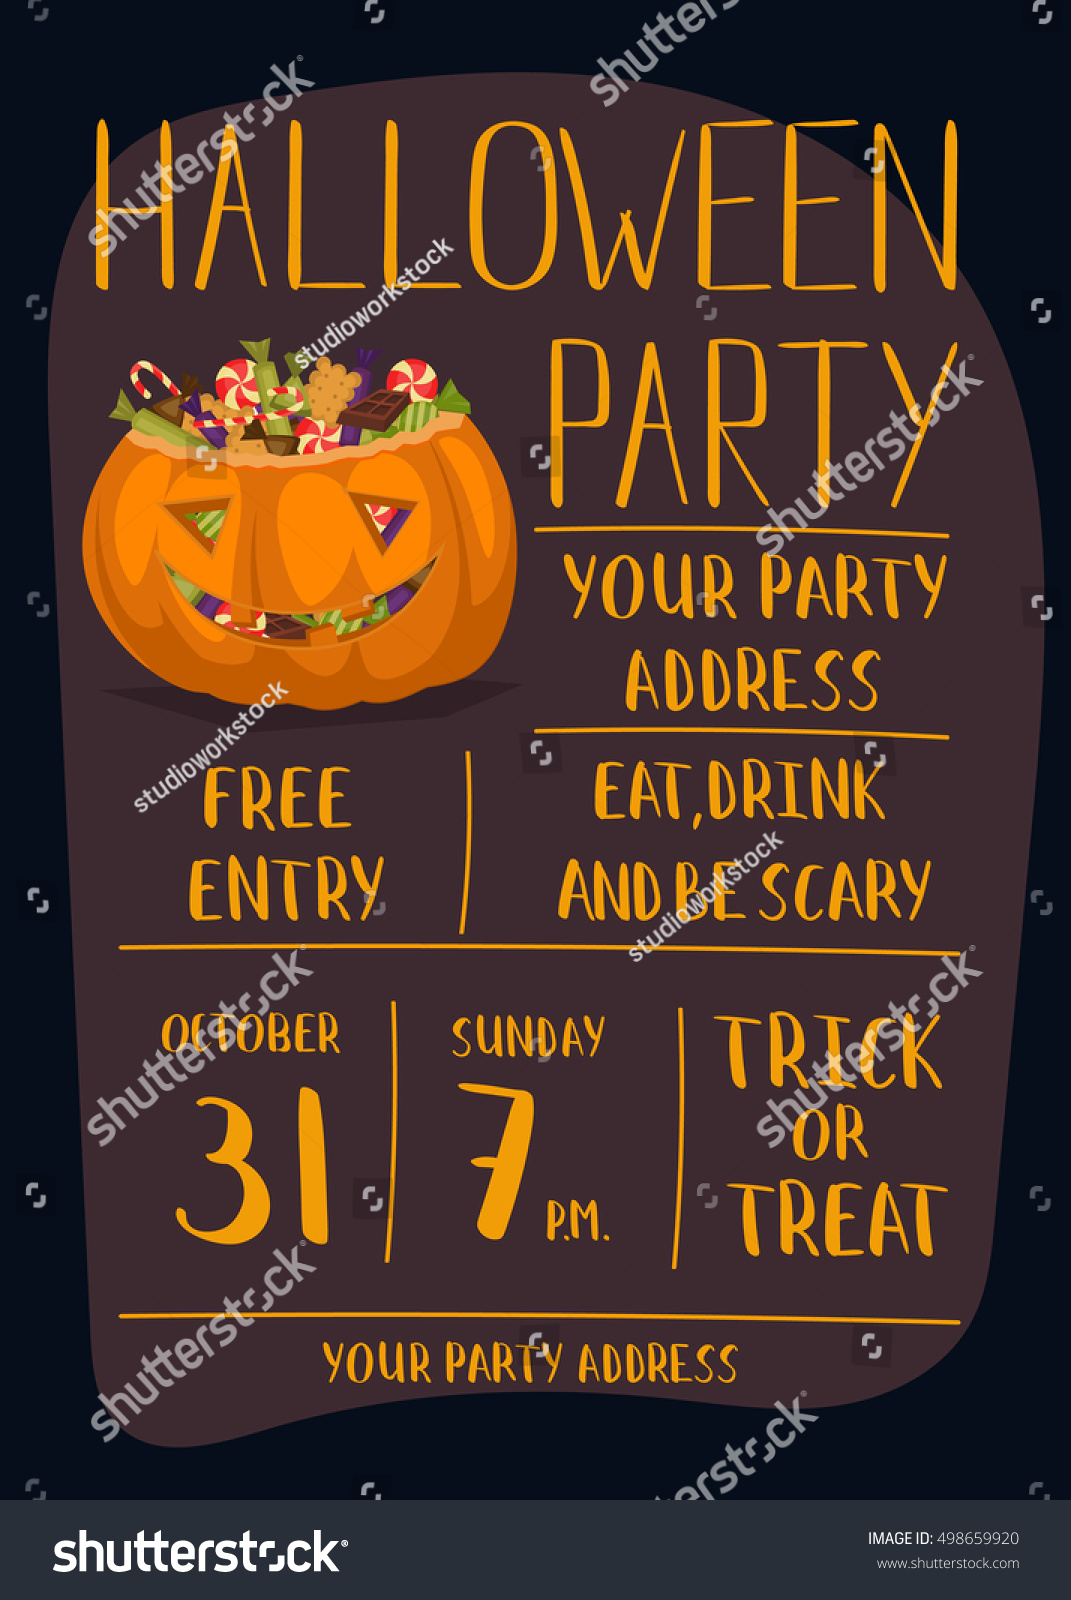 Vintage Halloween Party Invitation Smiling Pumpkin Stock Vector ...